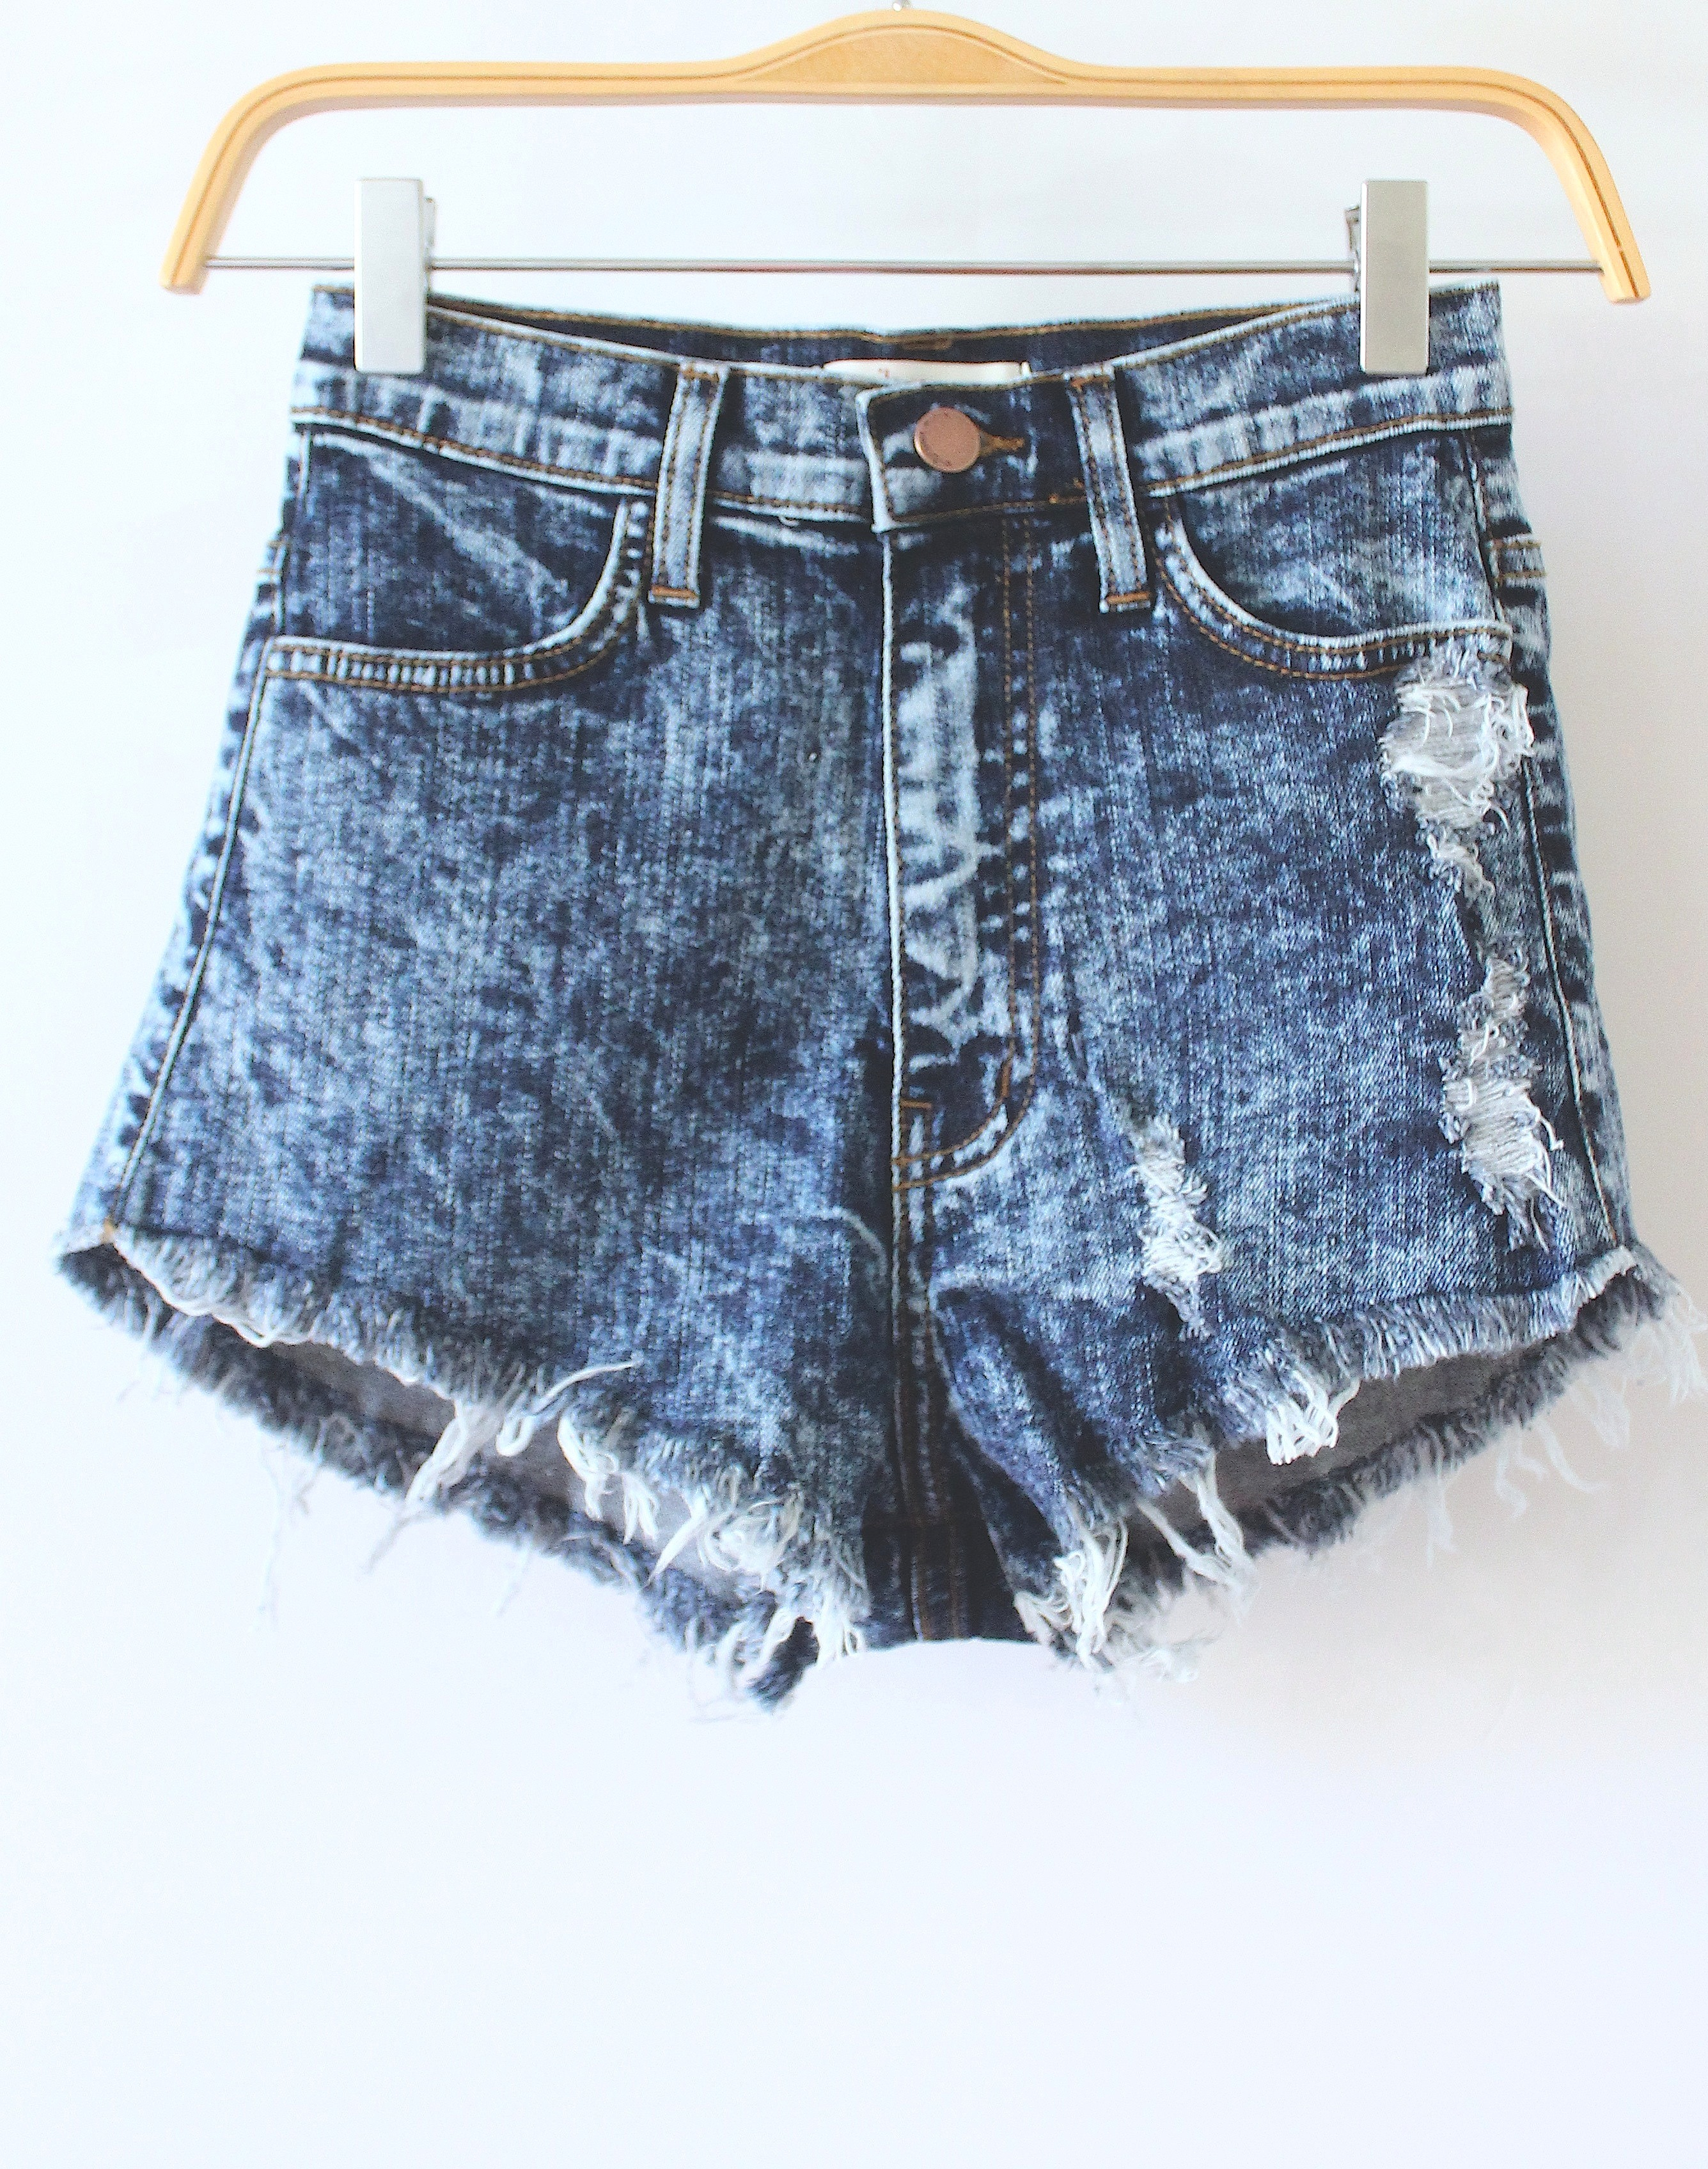 Waisted shorts from love junkee on storenvy